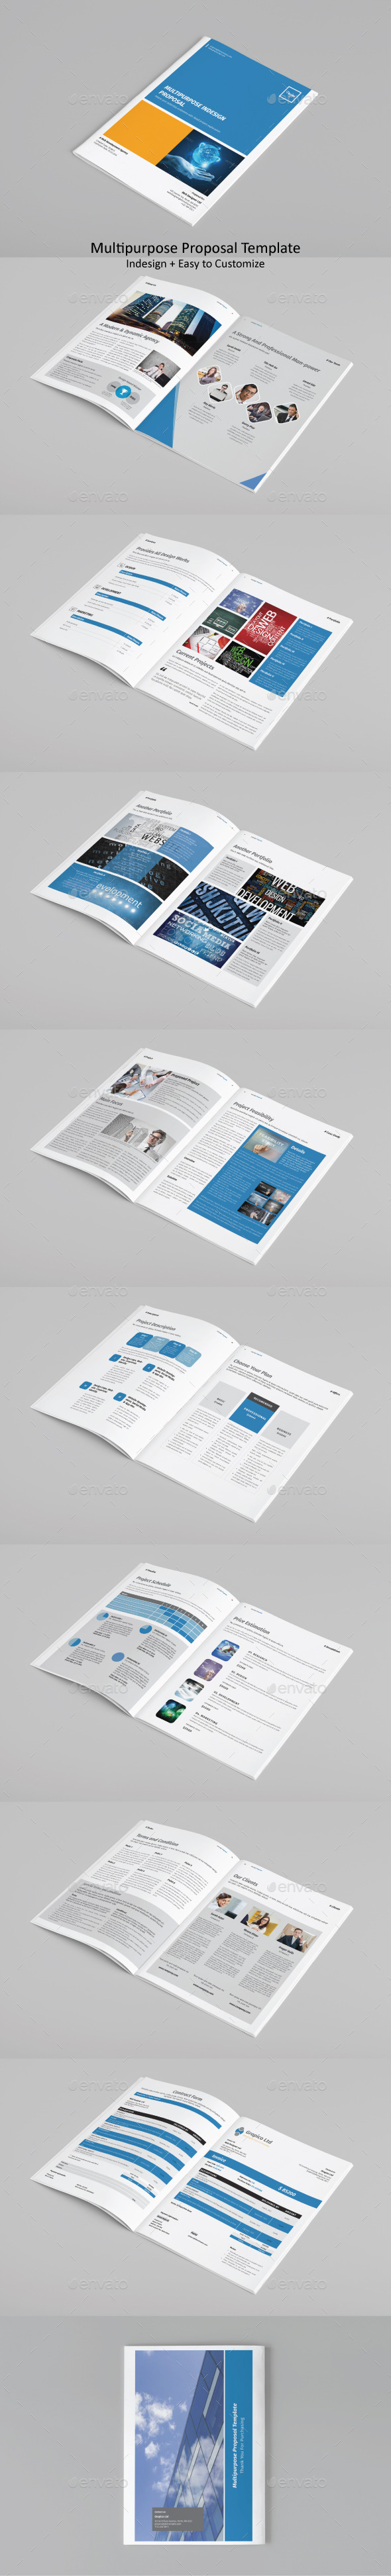 Multipurpose Proposal Template - Proposals & Invoices Stationery